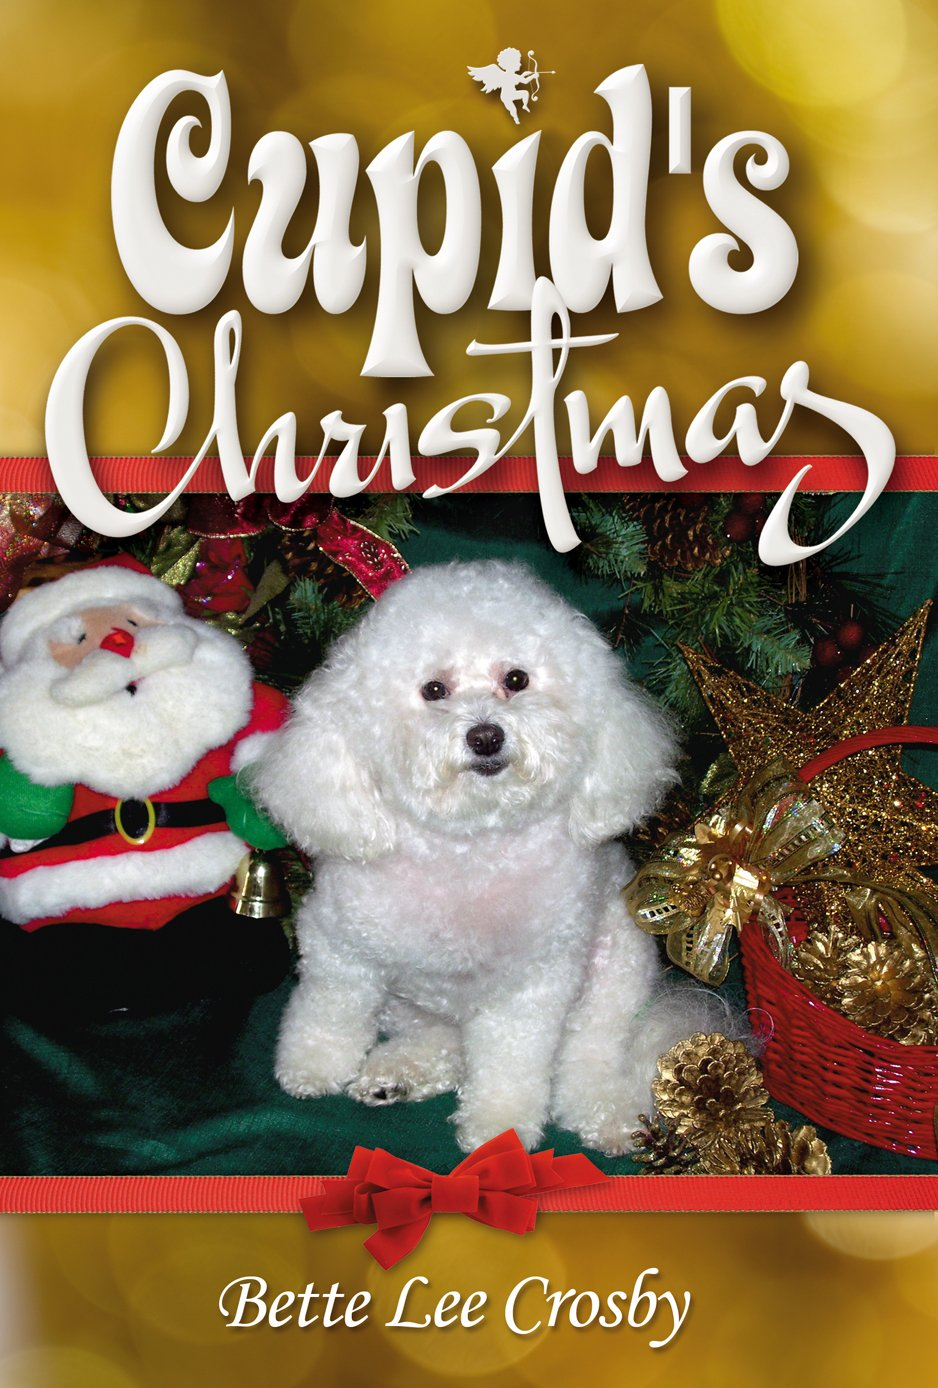 Too early for Christmas, but time for Celebration – Bette Lee Crosby